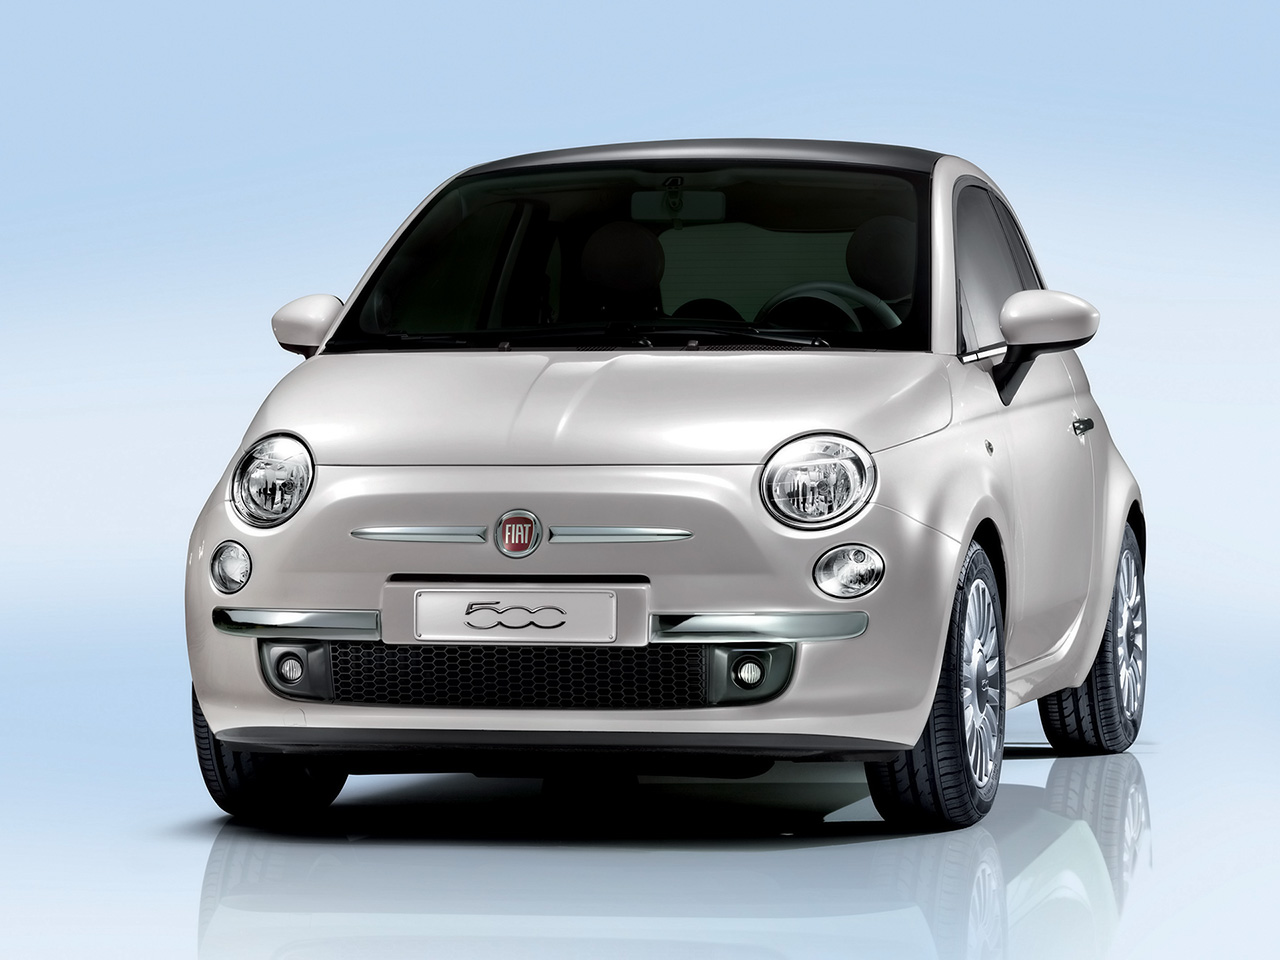 fotos e imagens fotos do carro fiat 500. Black Bedroom Furniture Sets. Home Design Ideas